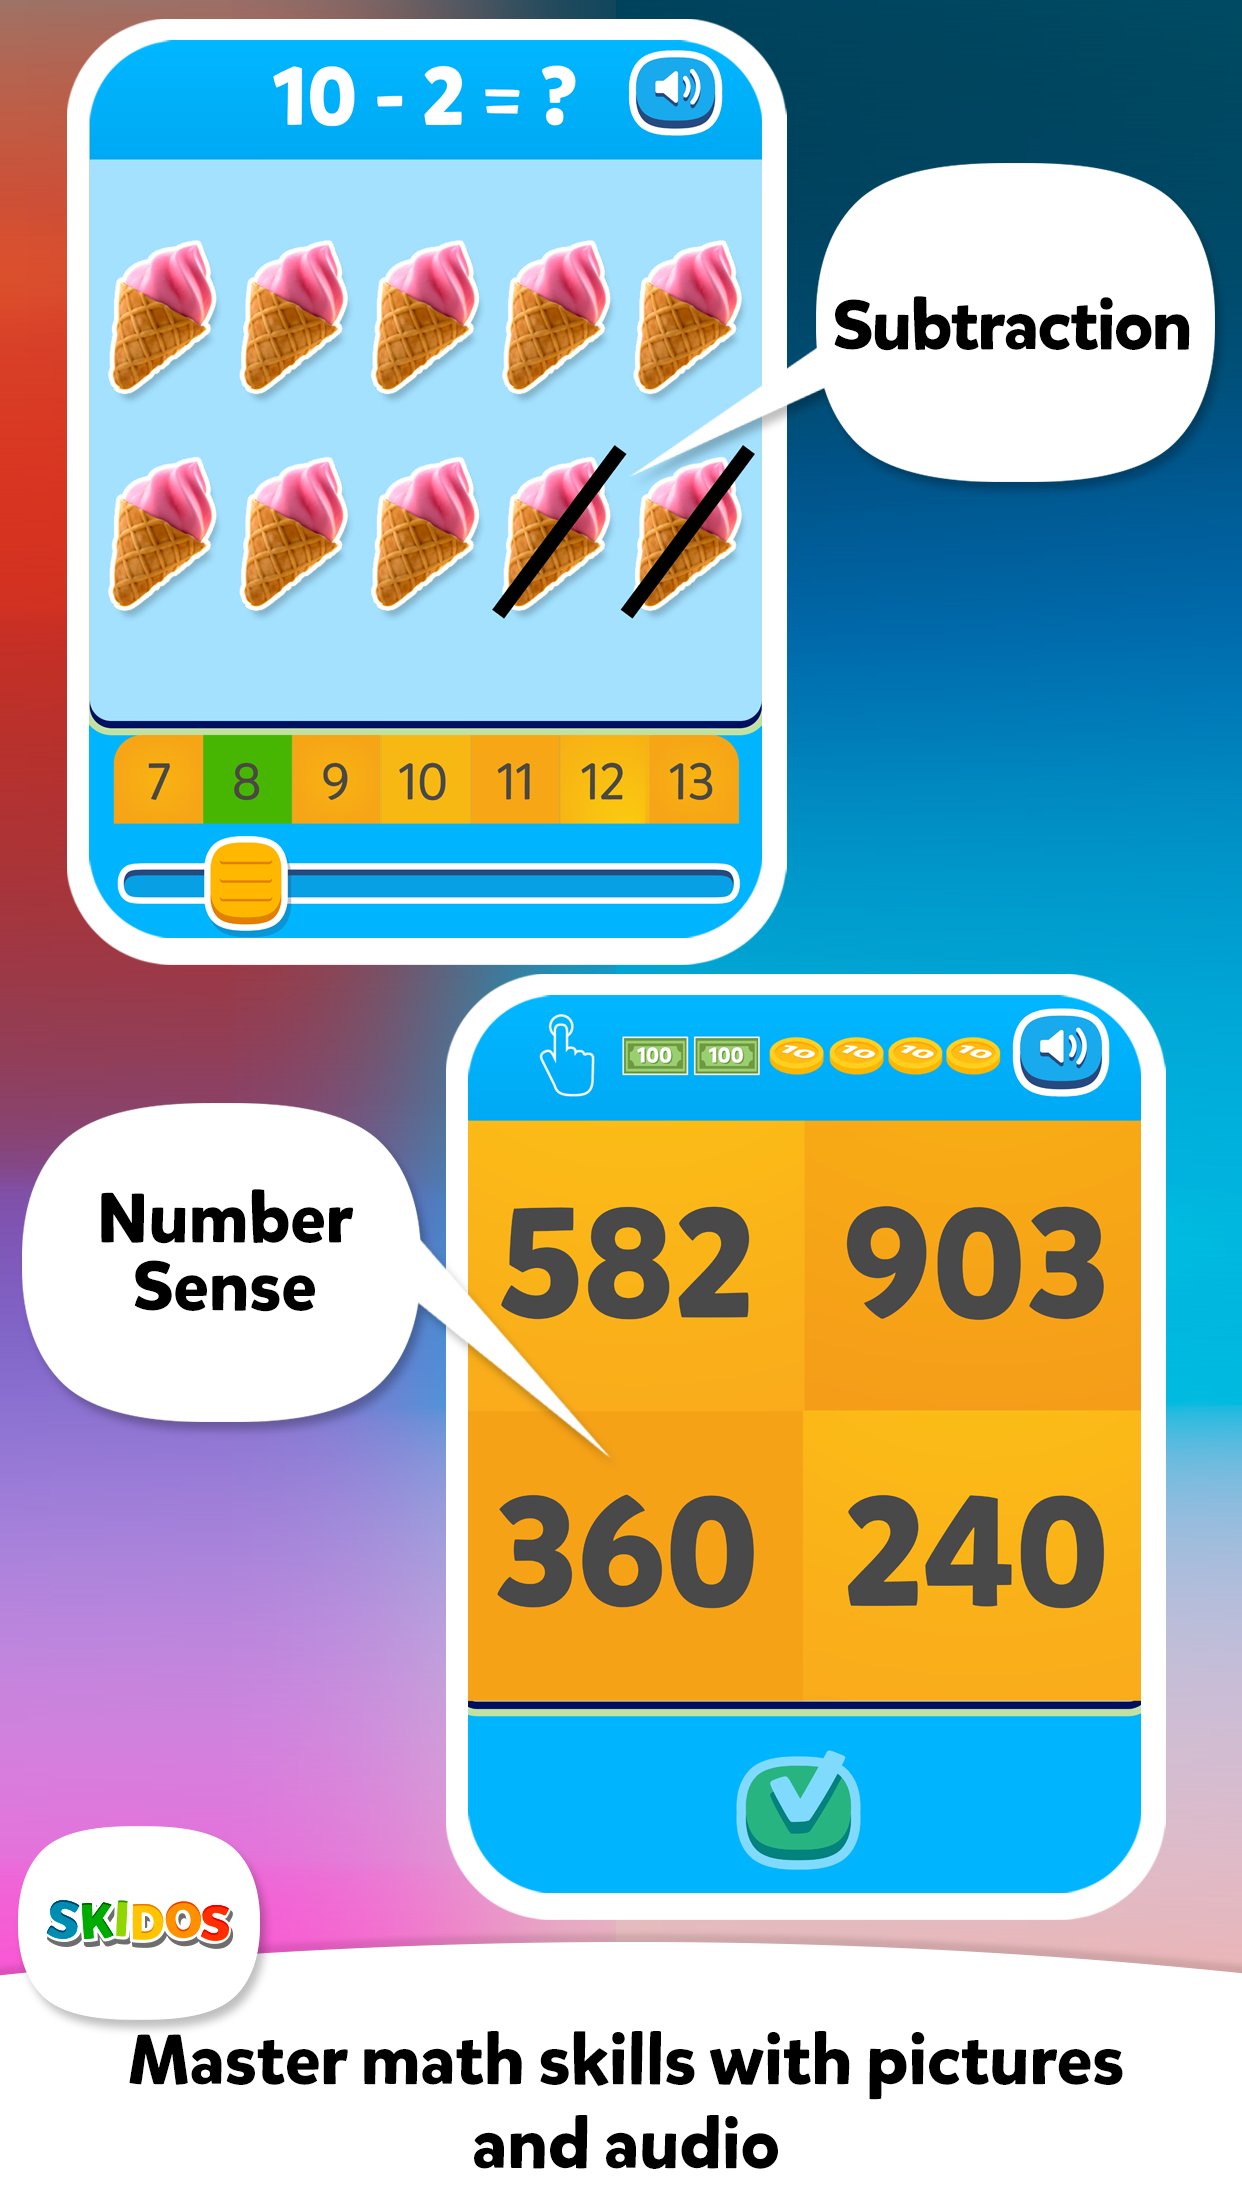 SKIDOS Number Sense and Subtraction Math Content